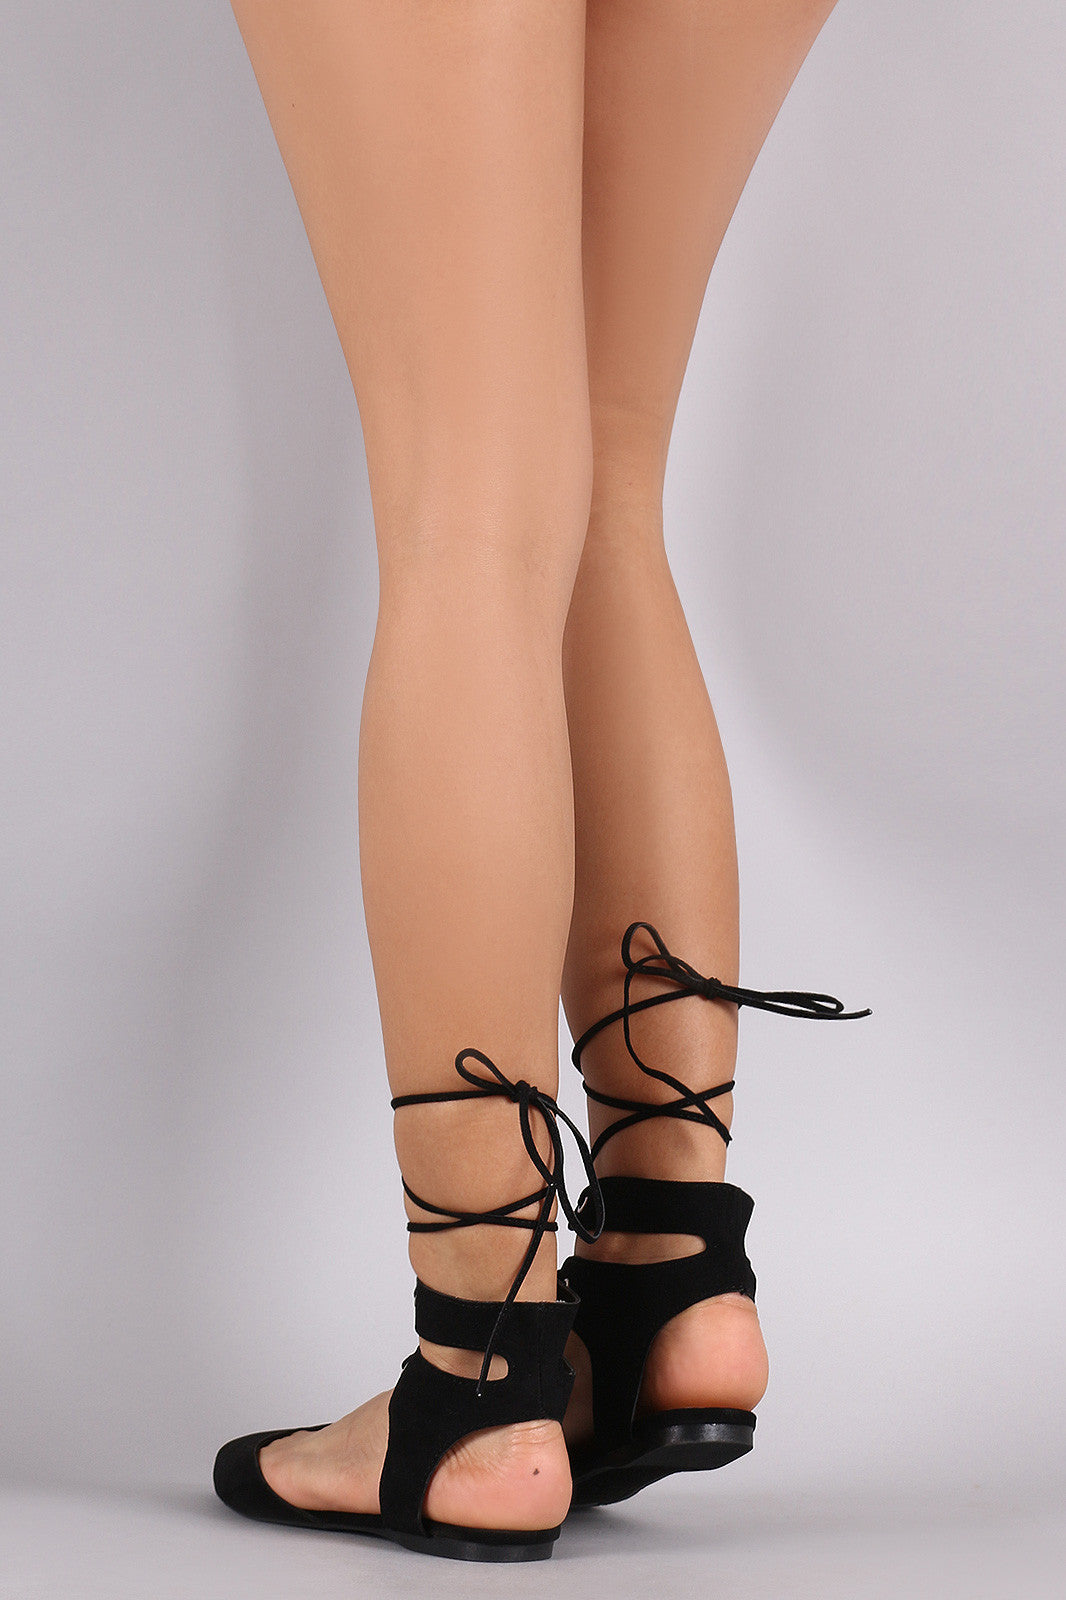 Breckelle Cutouts Ankle Cuff Pointy Toe Flat - Thick 'N' Curvy Shop - 12